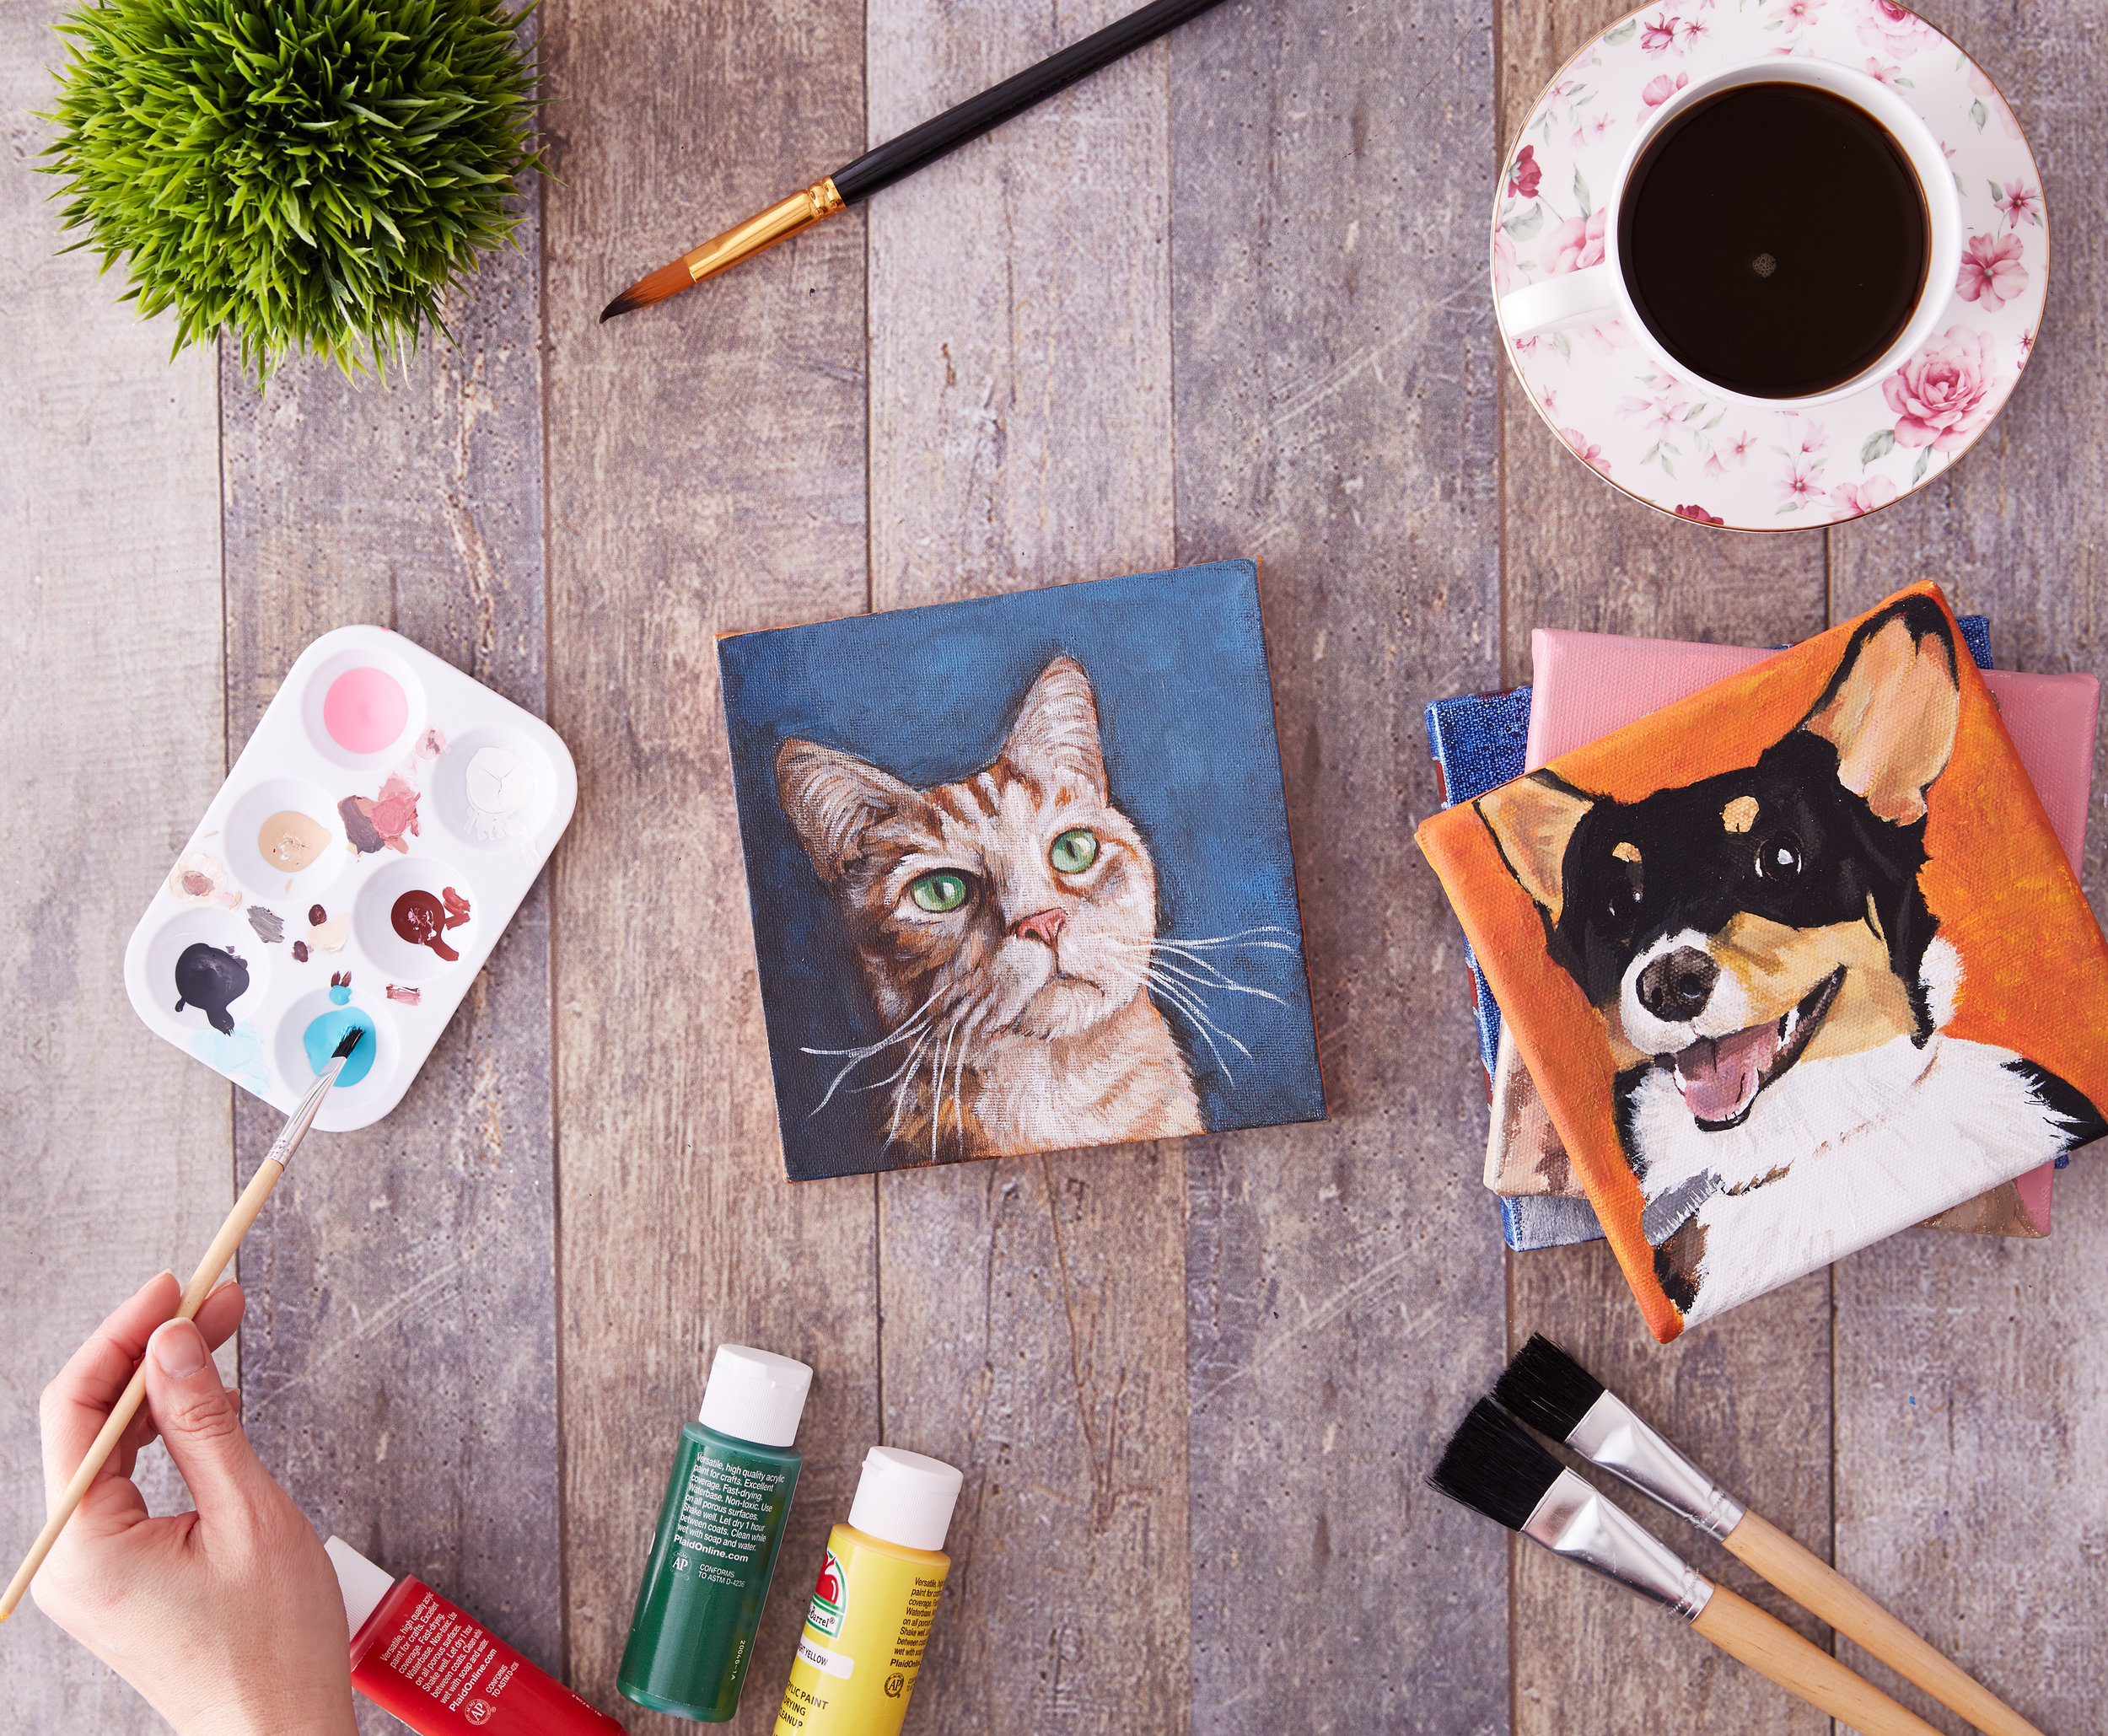 A commercial, lifestyle, fashion, advertising image of paintings of cats and dogs, featuring paint brushes, various paints and window lighting-  taken by Javier Edwards of El Roi Photo, in Miami, Florida